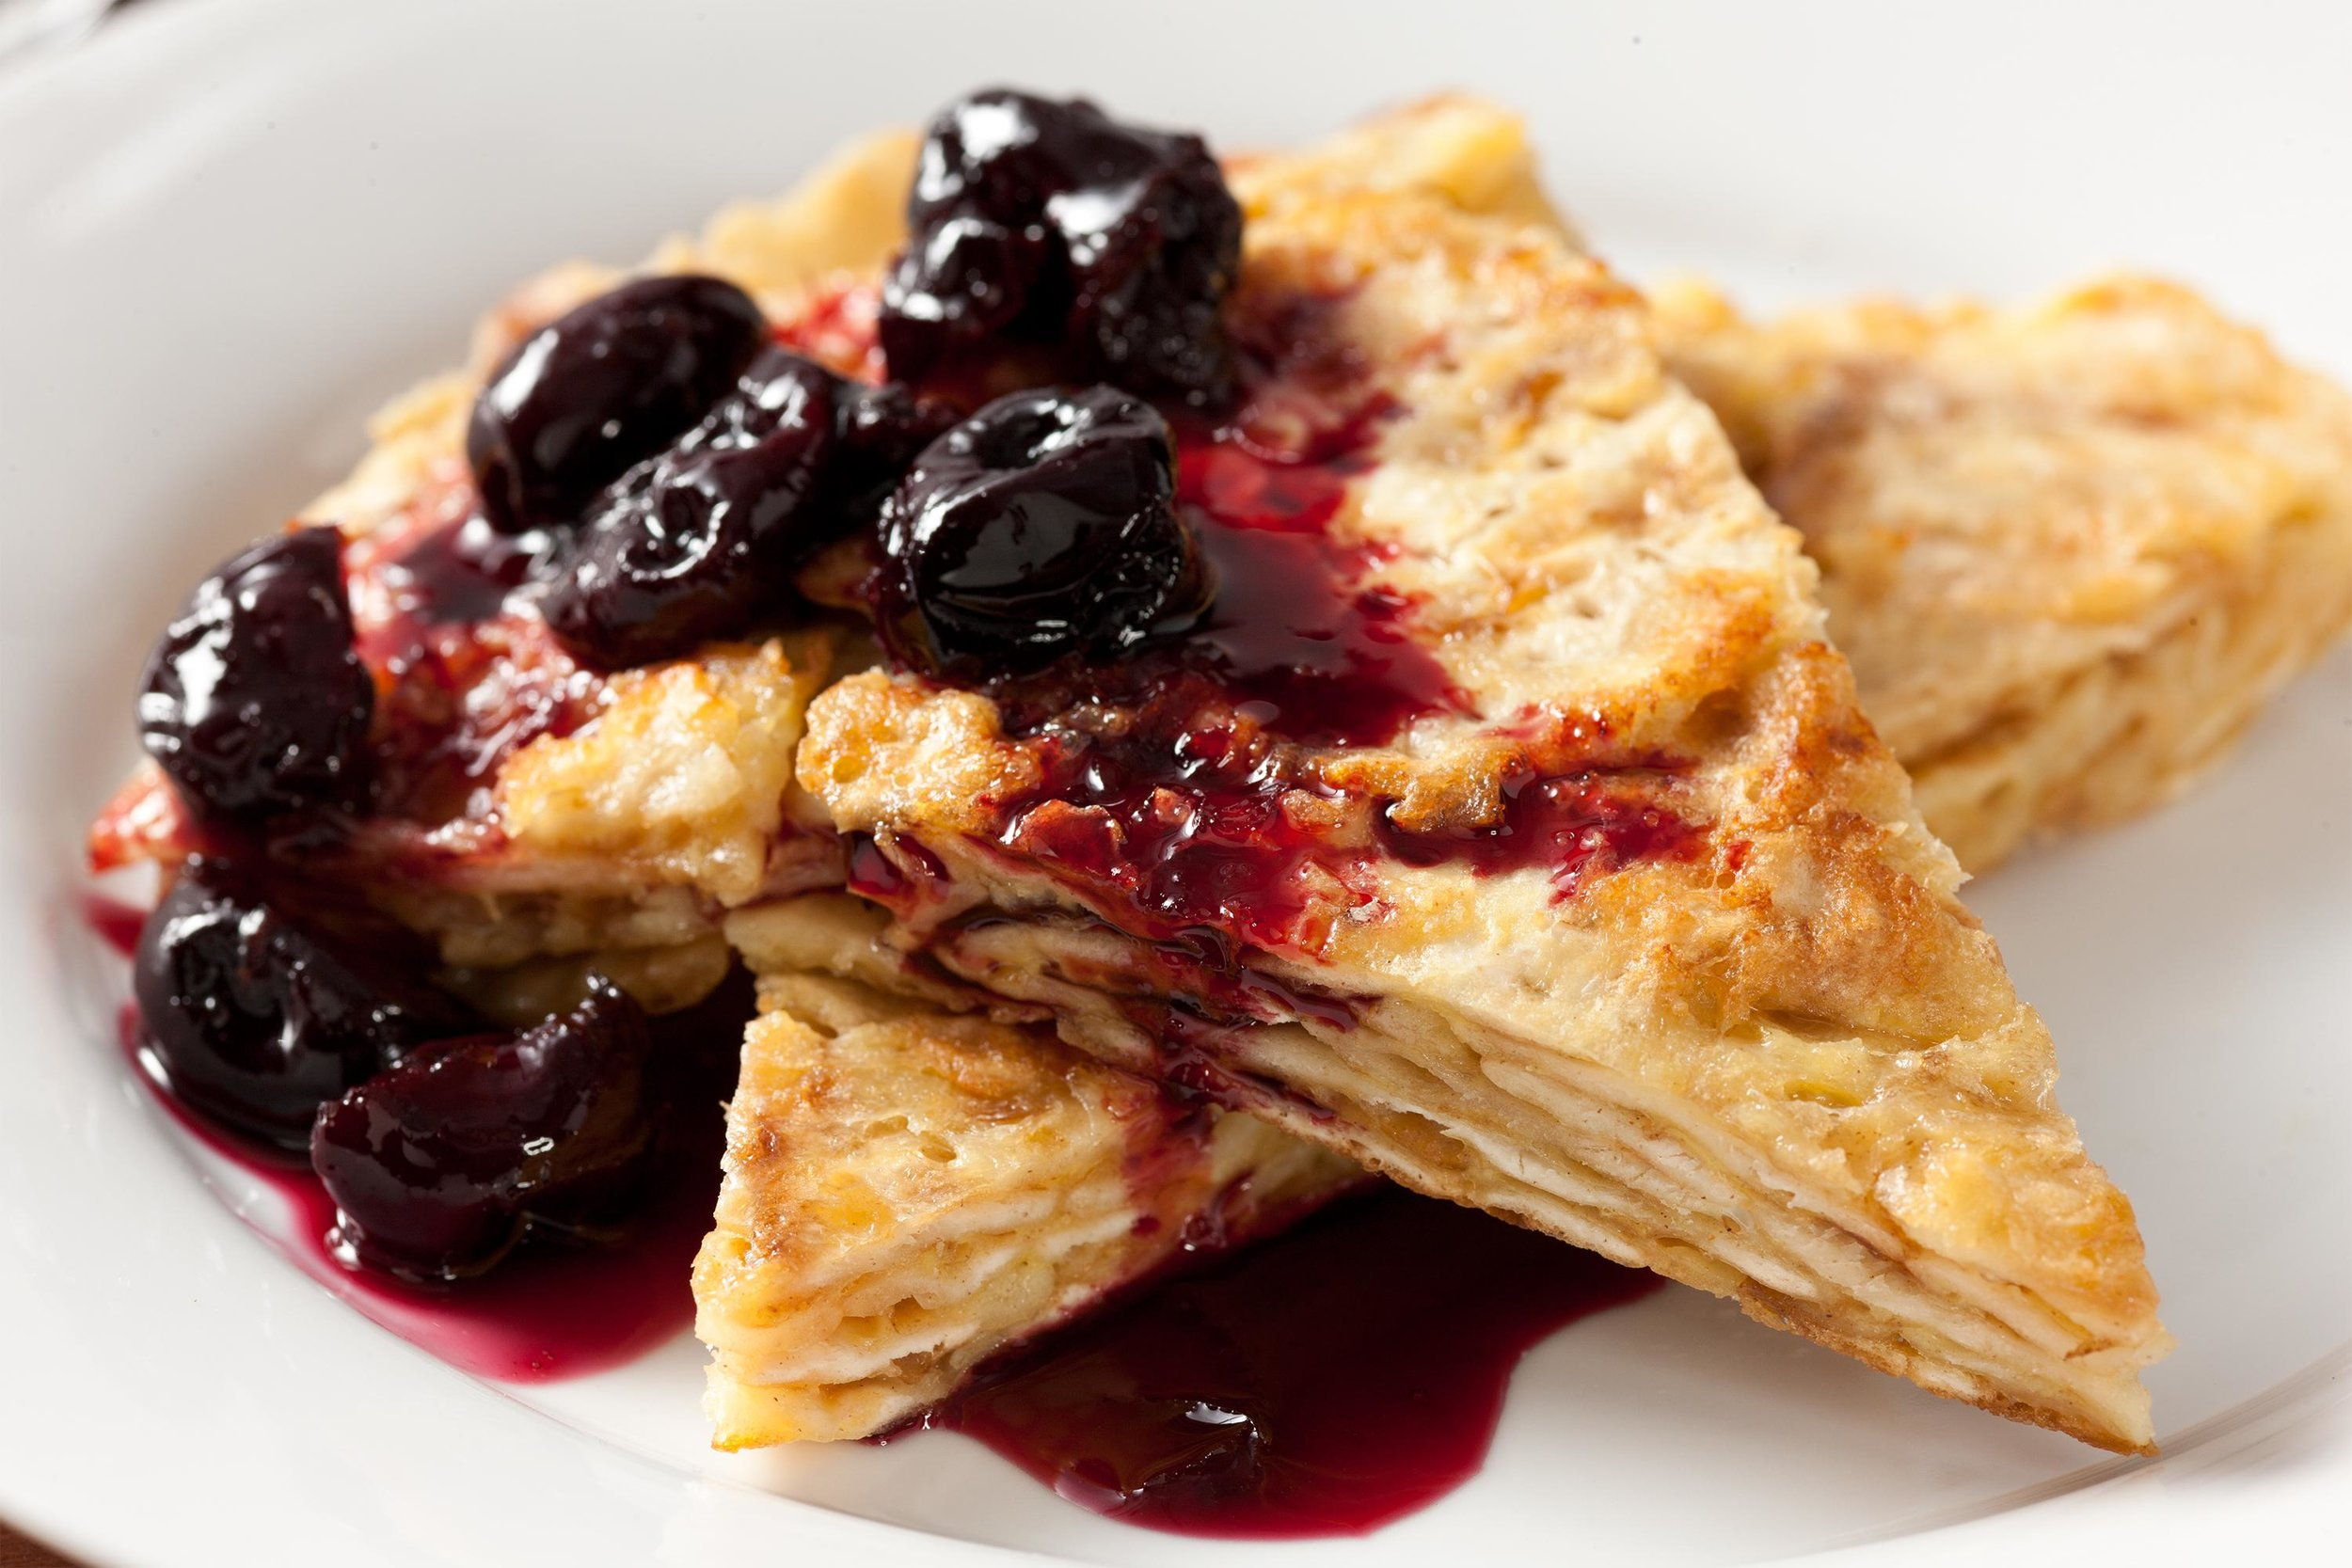 Seasonal & Holiday Eats! - This phenomenal start to a Pesach morning is a kicked up version of the classic. It can be served with any jam of your liking, maple syrup, cinnamon sugar, or just as is. It requires more work than the conventional version, but it's well worth it!